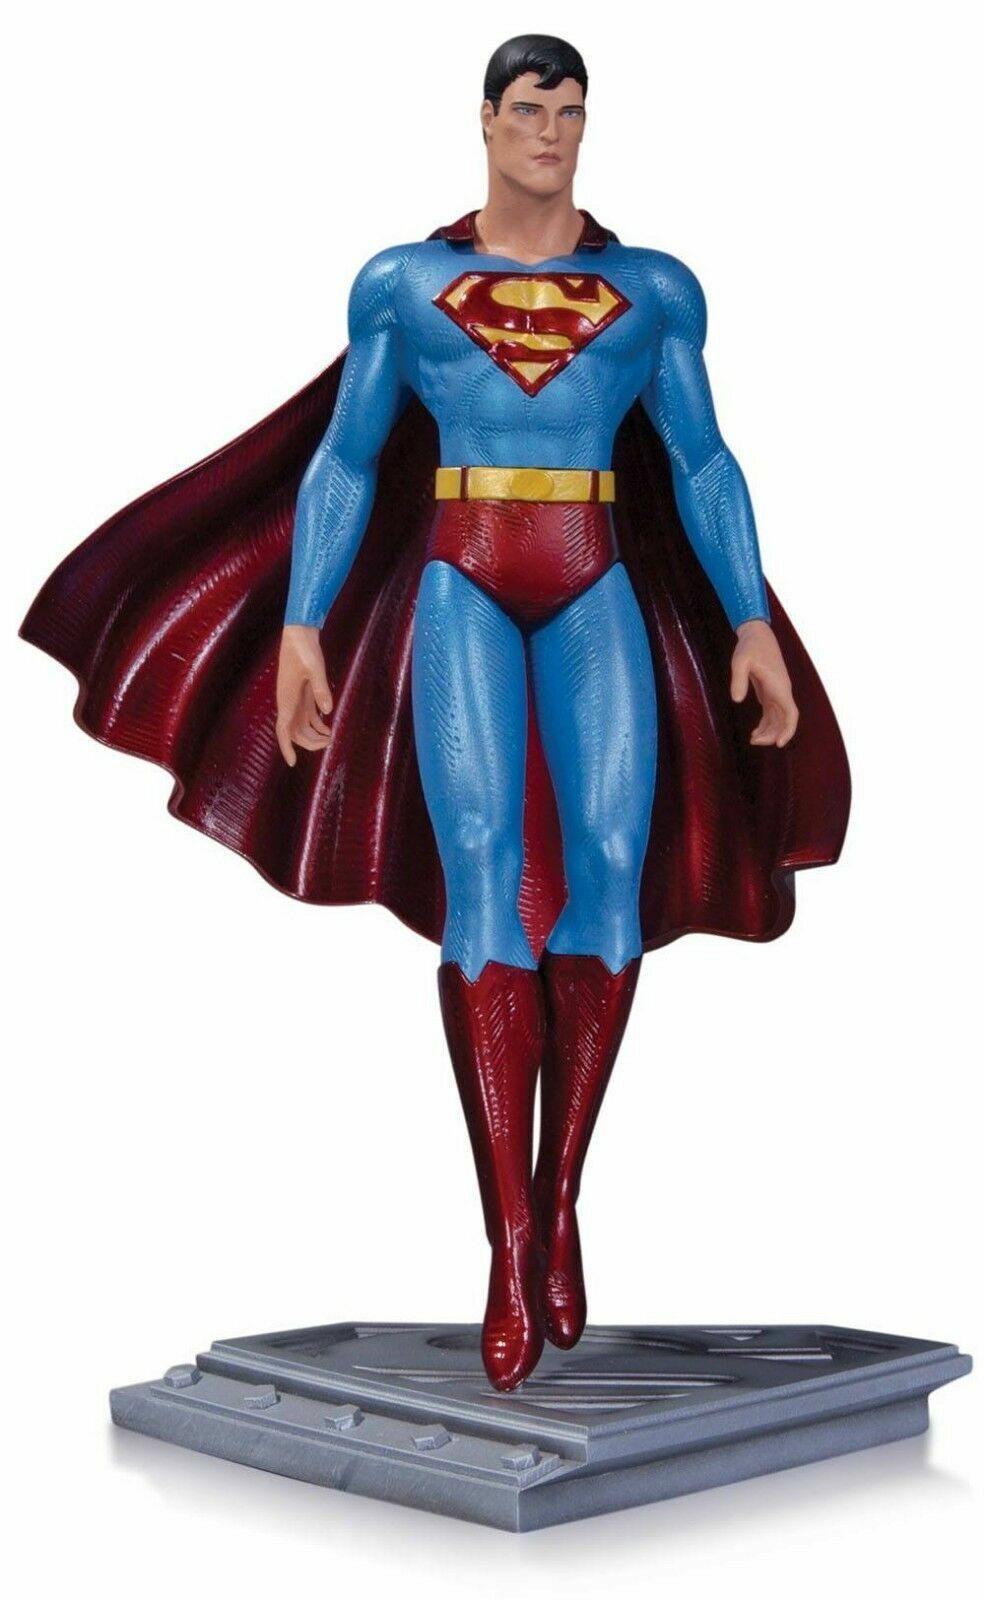 Man of Steel Superman by Moebius Harz Statuette Figur Statue - DC Collectibles